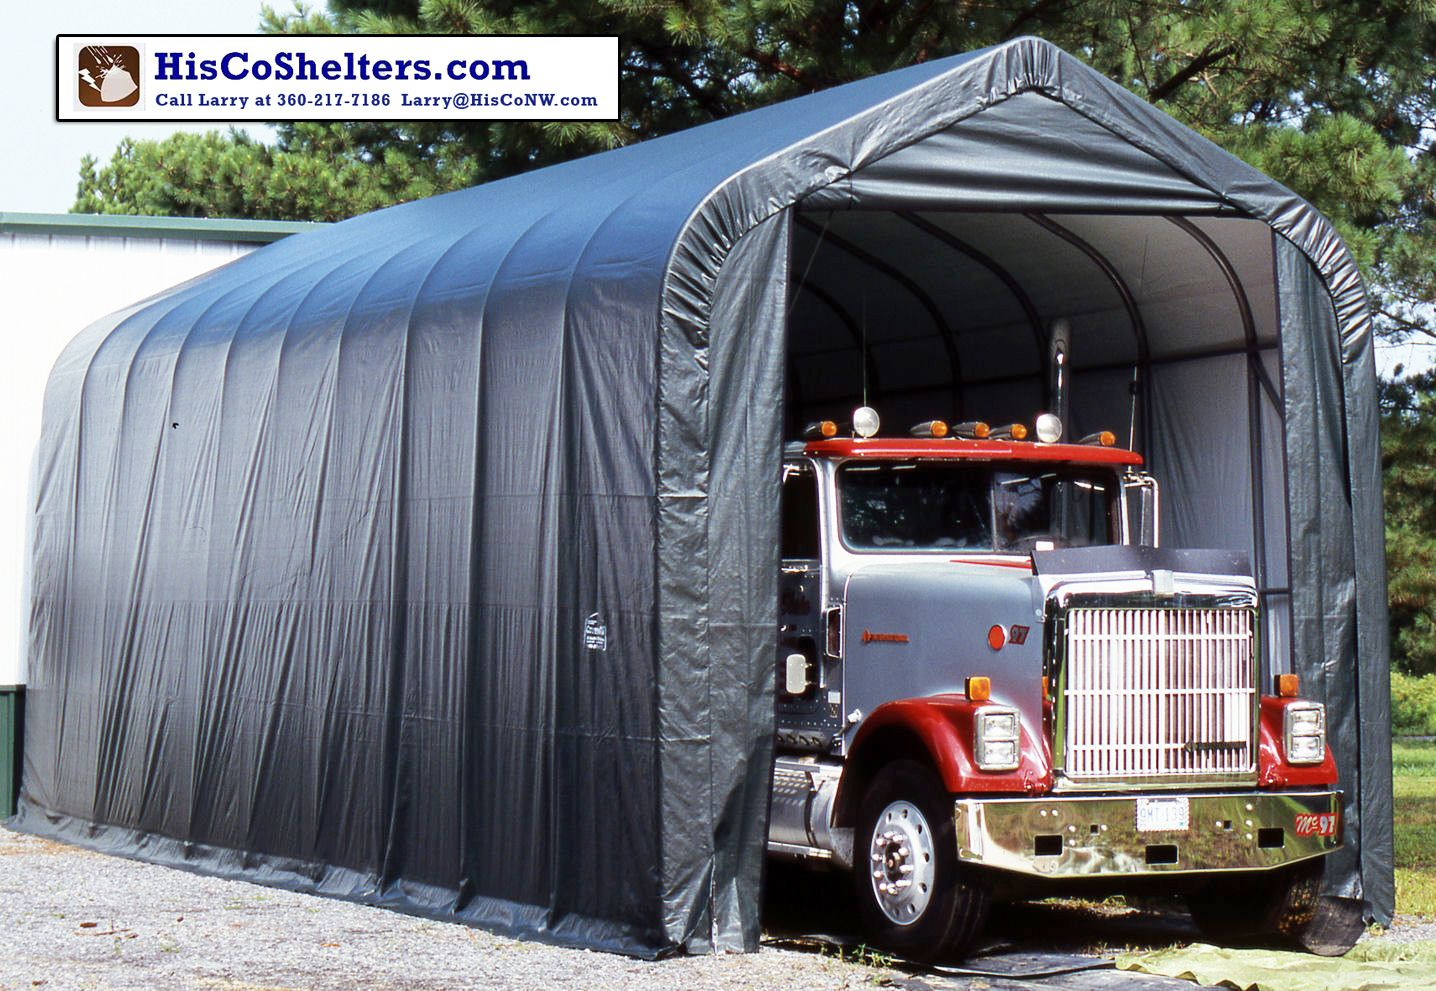 Shelter Logic Portable Rv Garage Shelter Kit 15 Wide And 12 Or 16 High Peak Roof Heavy Duty Fully Enclosed Double Z Portable Garage Shelter Rv Garage